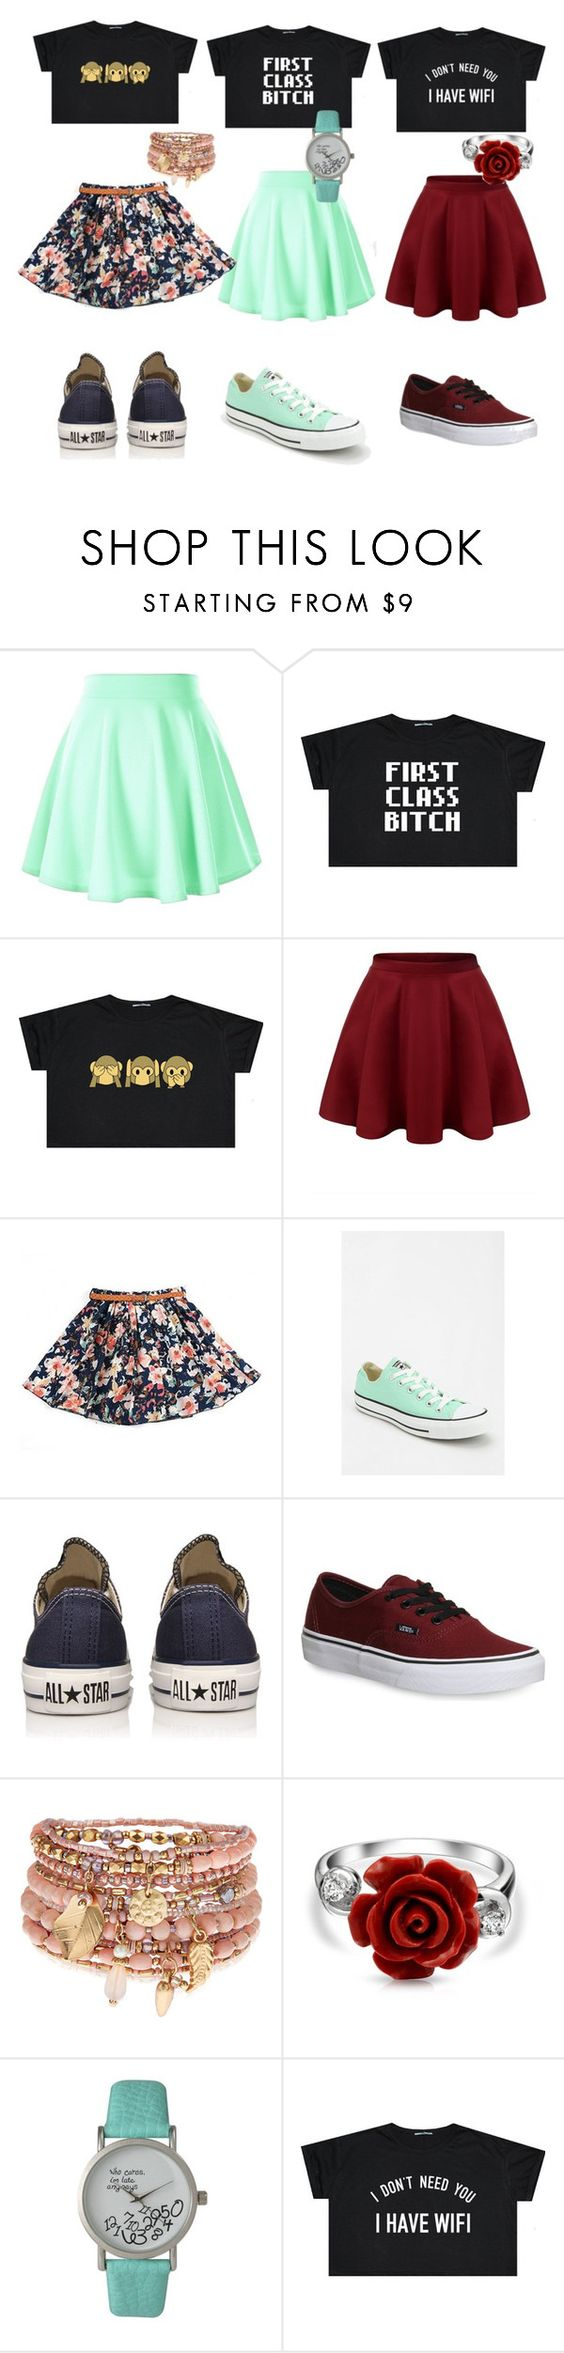 """1, 2, or 3✨"" by polyvoretrendss ❤ liked on Polyvore featuring Converse, Vans, Accessorize, Bling Jewelry and Olivia Pratt"